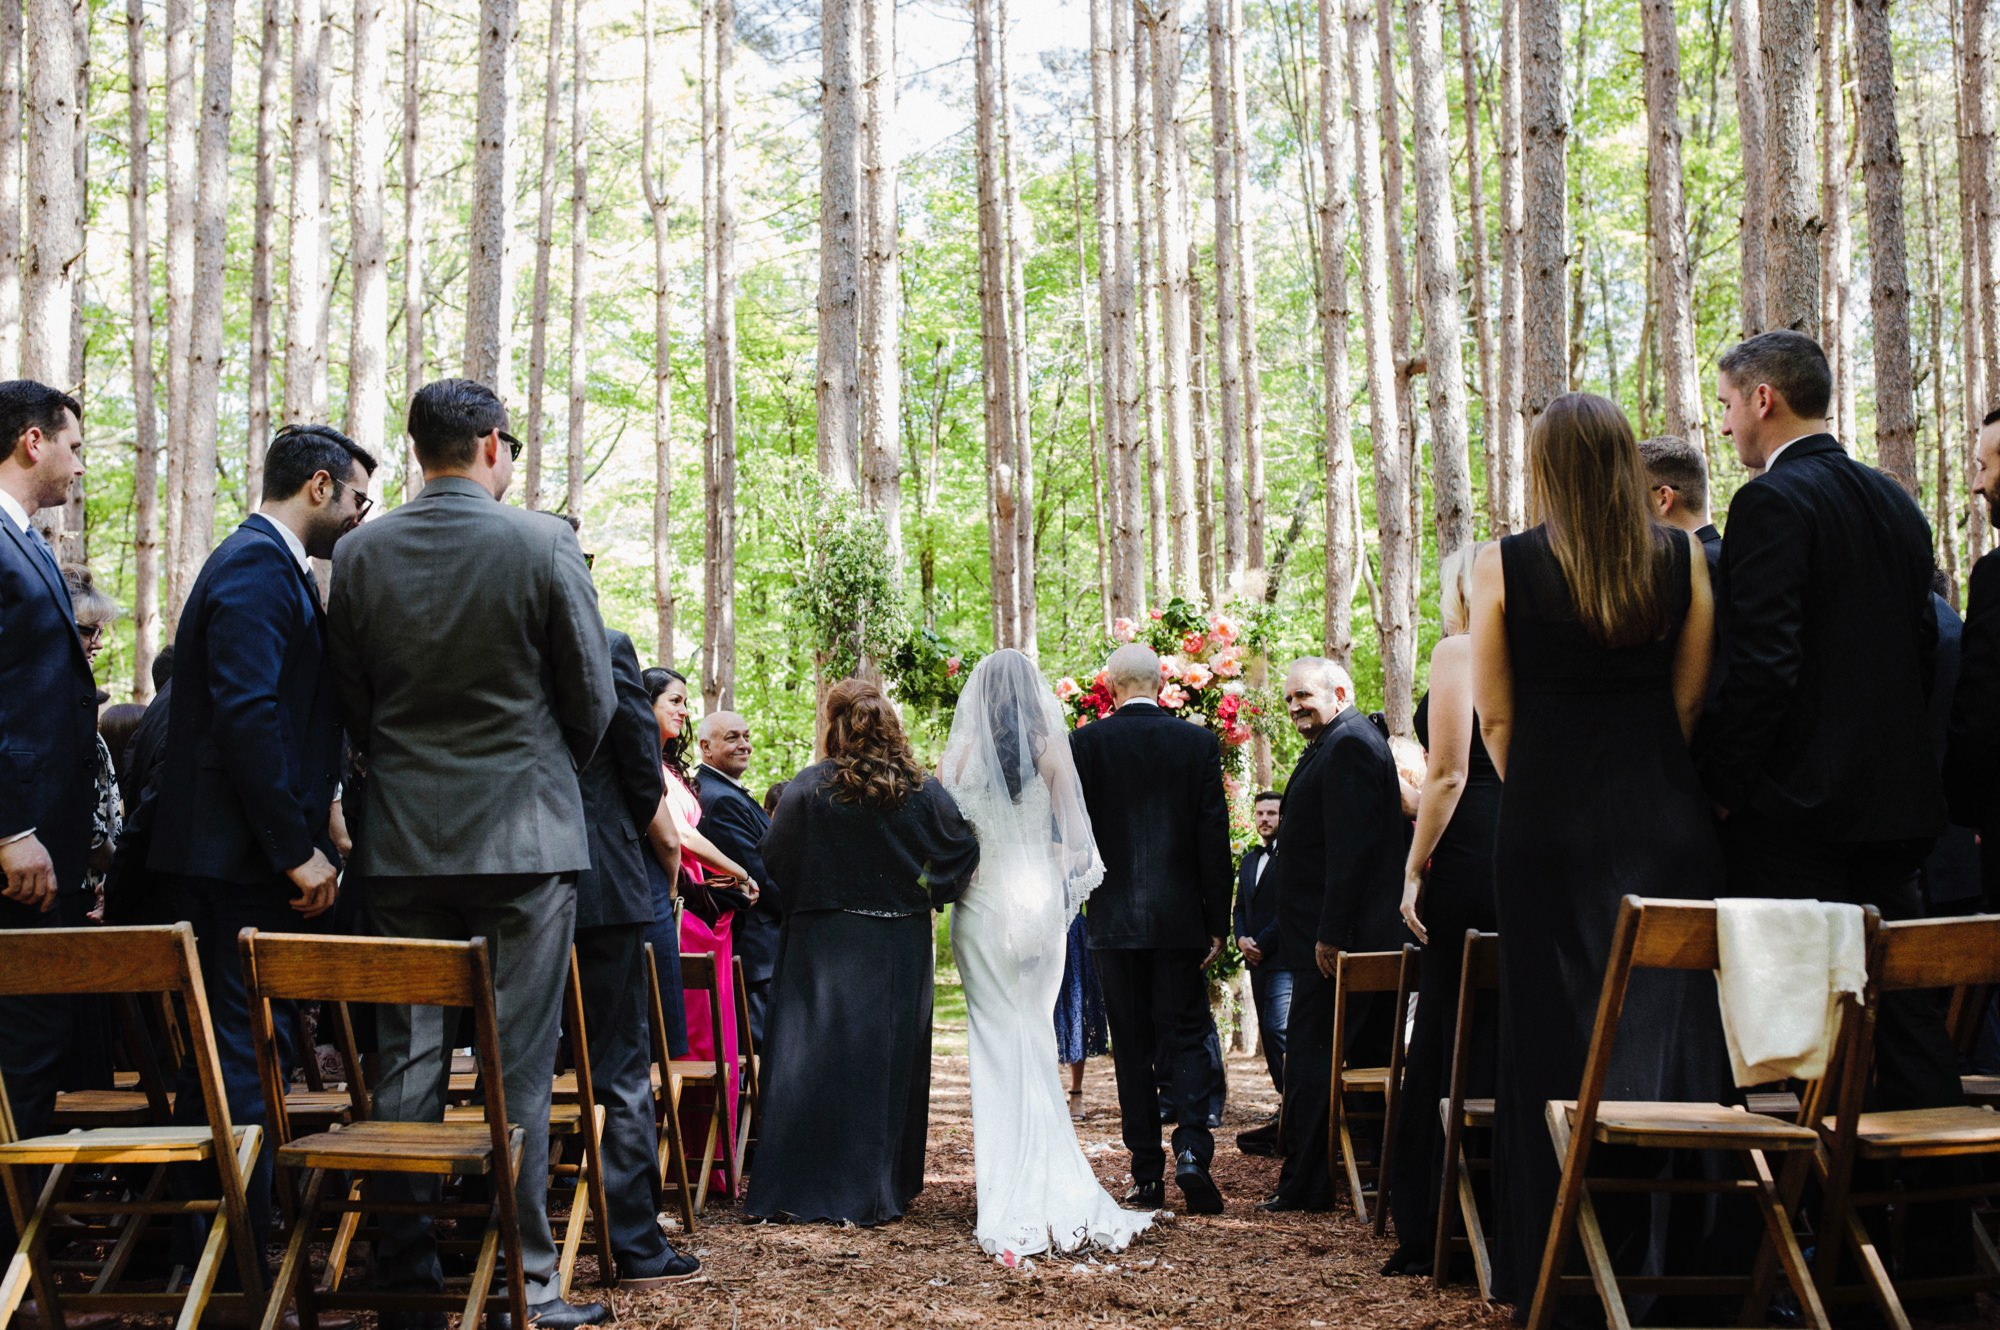 bride walking down the aisle at The Pine Grove wedding ceremony location at Roxbury Barn Estate in the Catskills New York